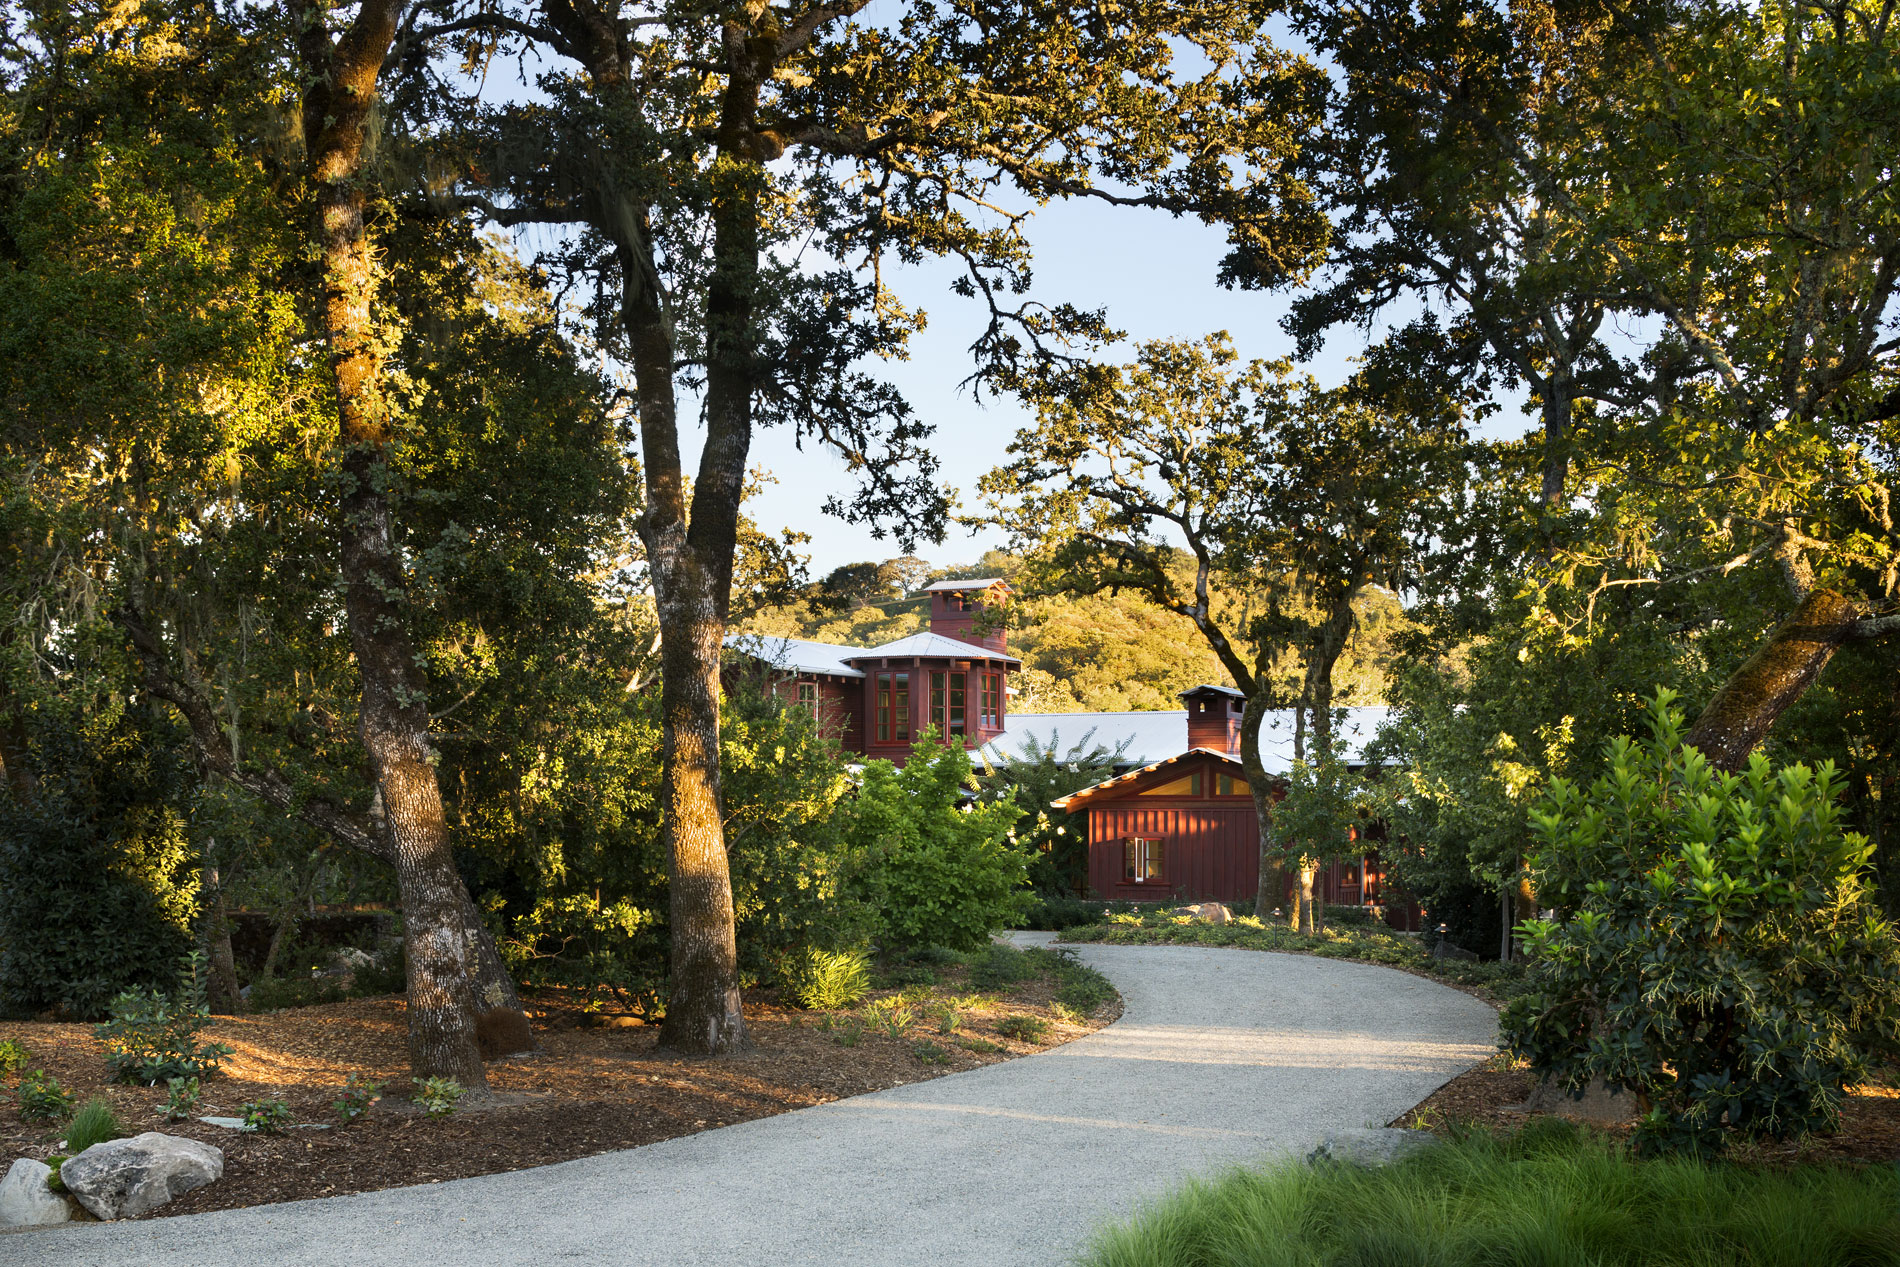 Views to the house become slowly revealed along the entry drive, along which existing trees were preserved and additional ornamental understory plantings added. (Photo credit: Peter Aaron/OTTO for Robert A.M. Stern Architects)